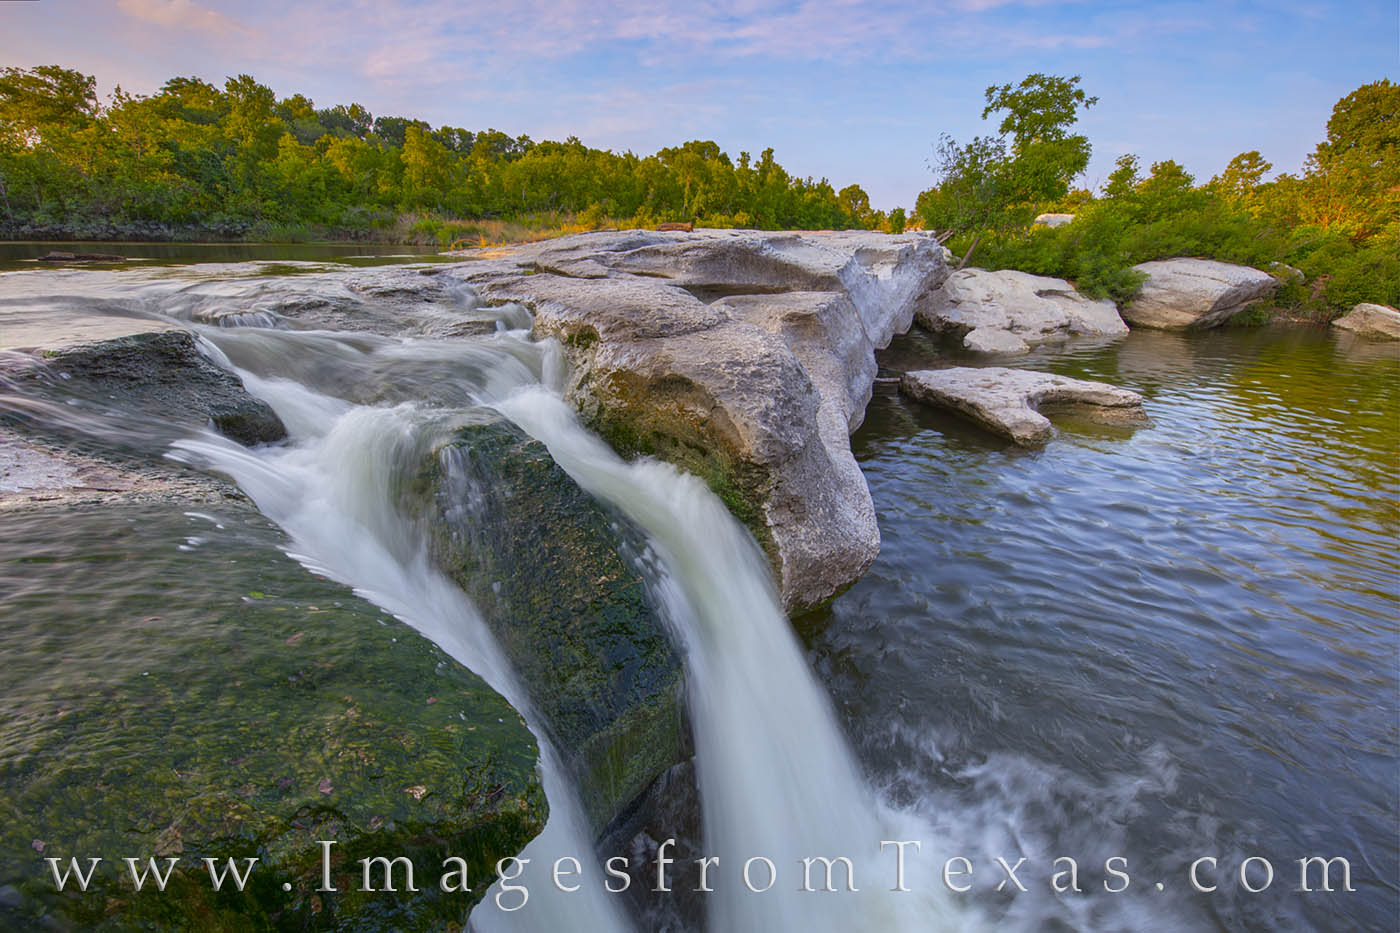 Fast flowing water from Onion Creek pours over the limestone rocks at the Upper Falls area of McKinney Falls State Park in the...